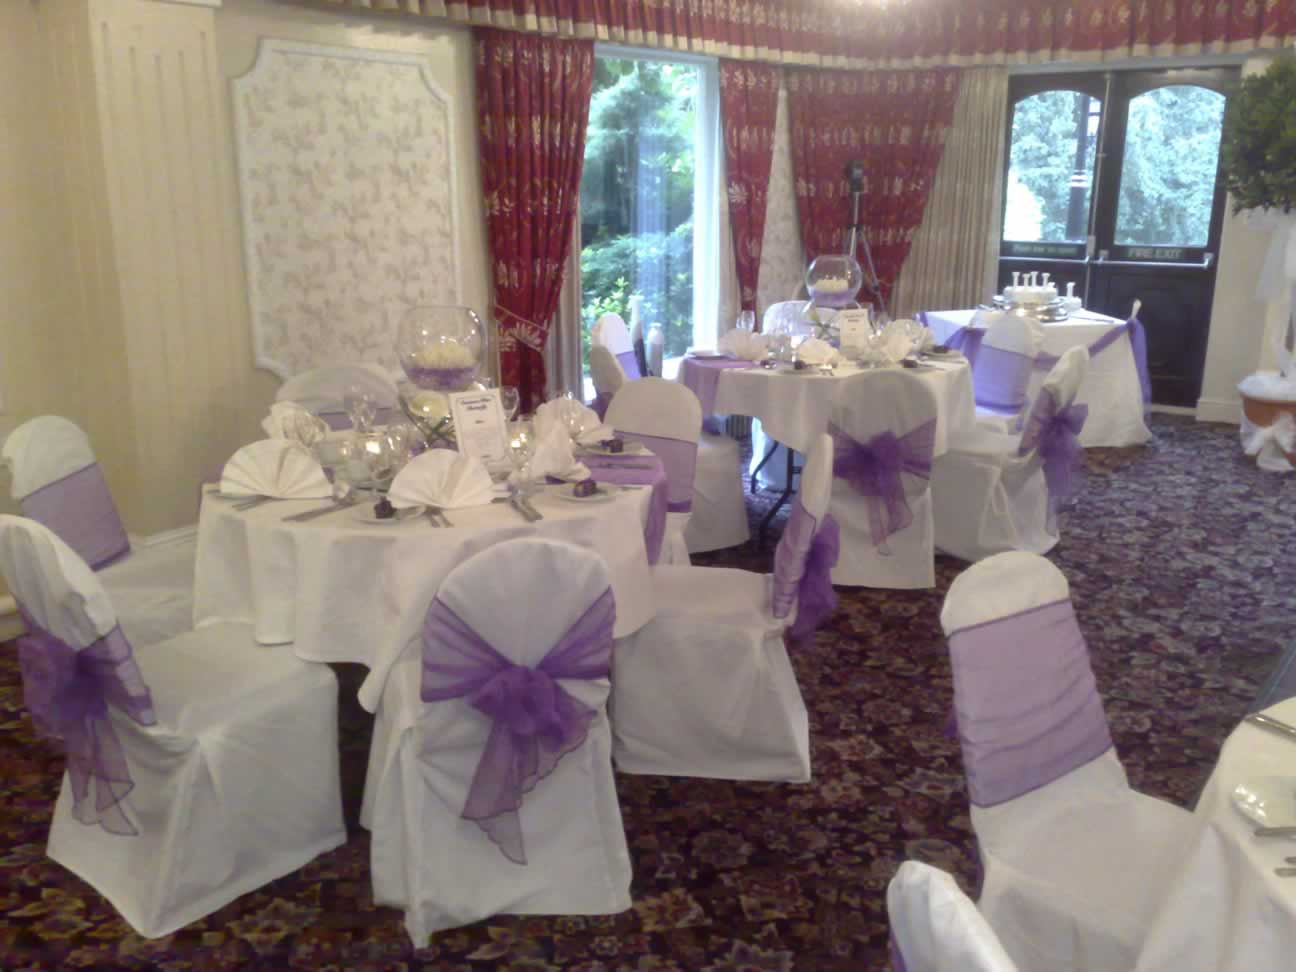 wedding chair covers warrington white with gold bows the uk company venue dresser